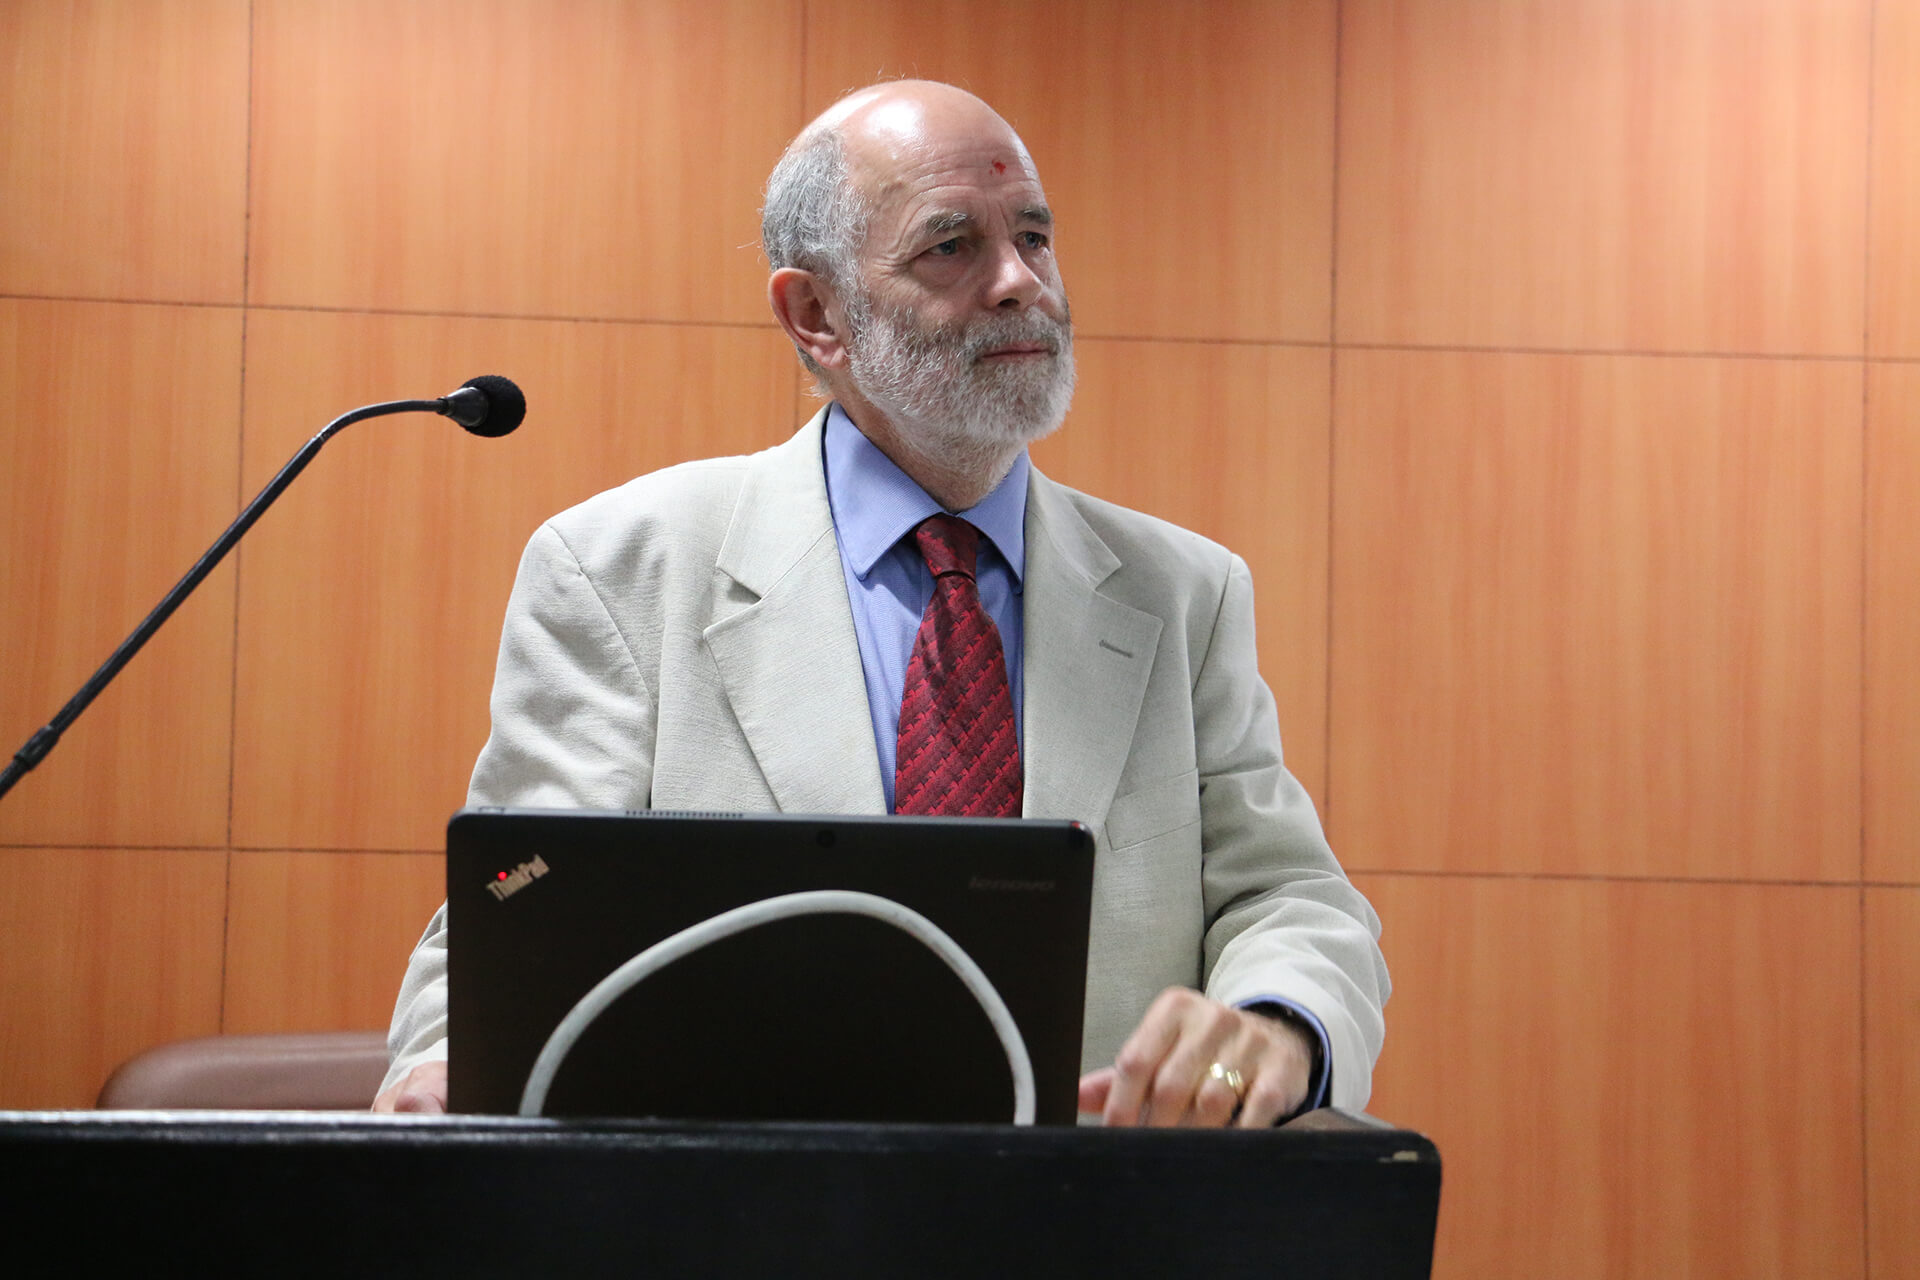 Prof. (Dr.) Peter Robinson